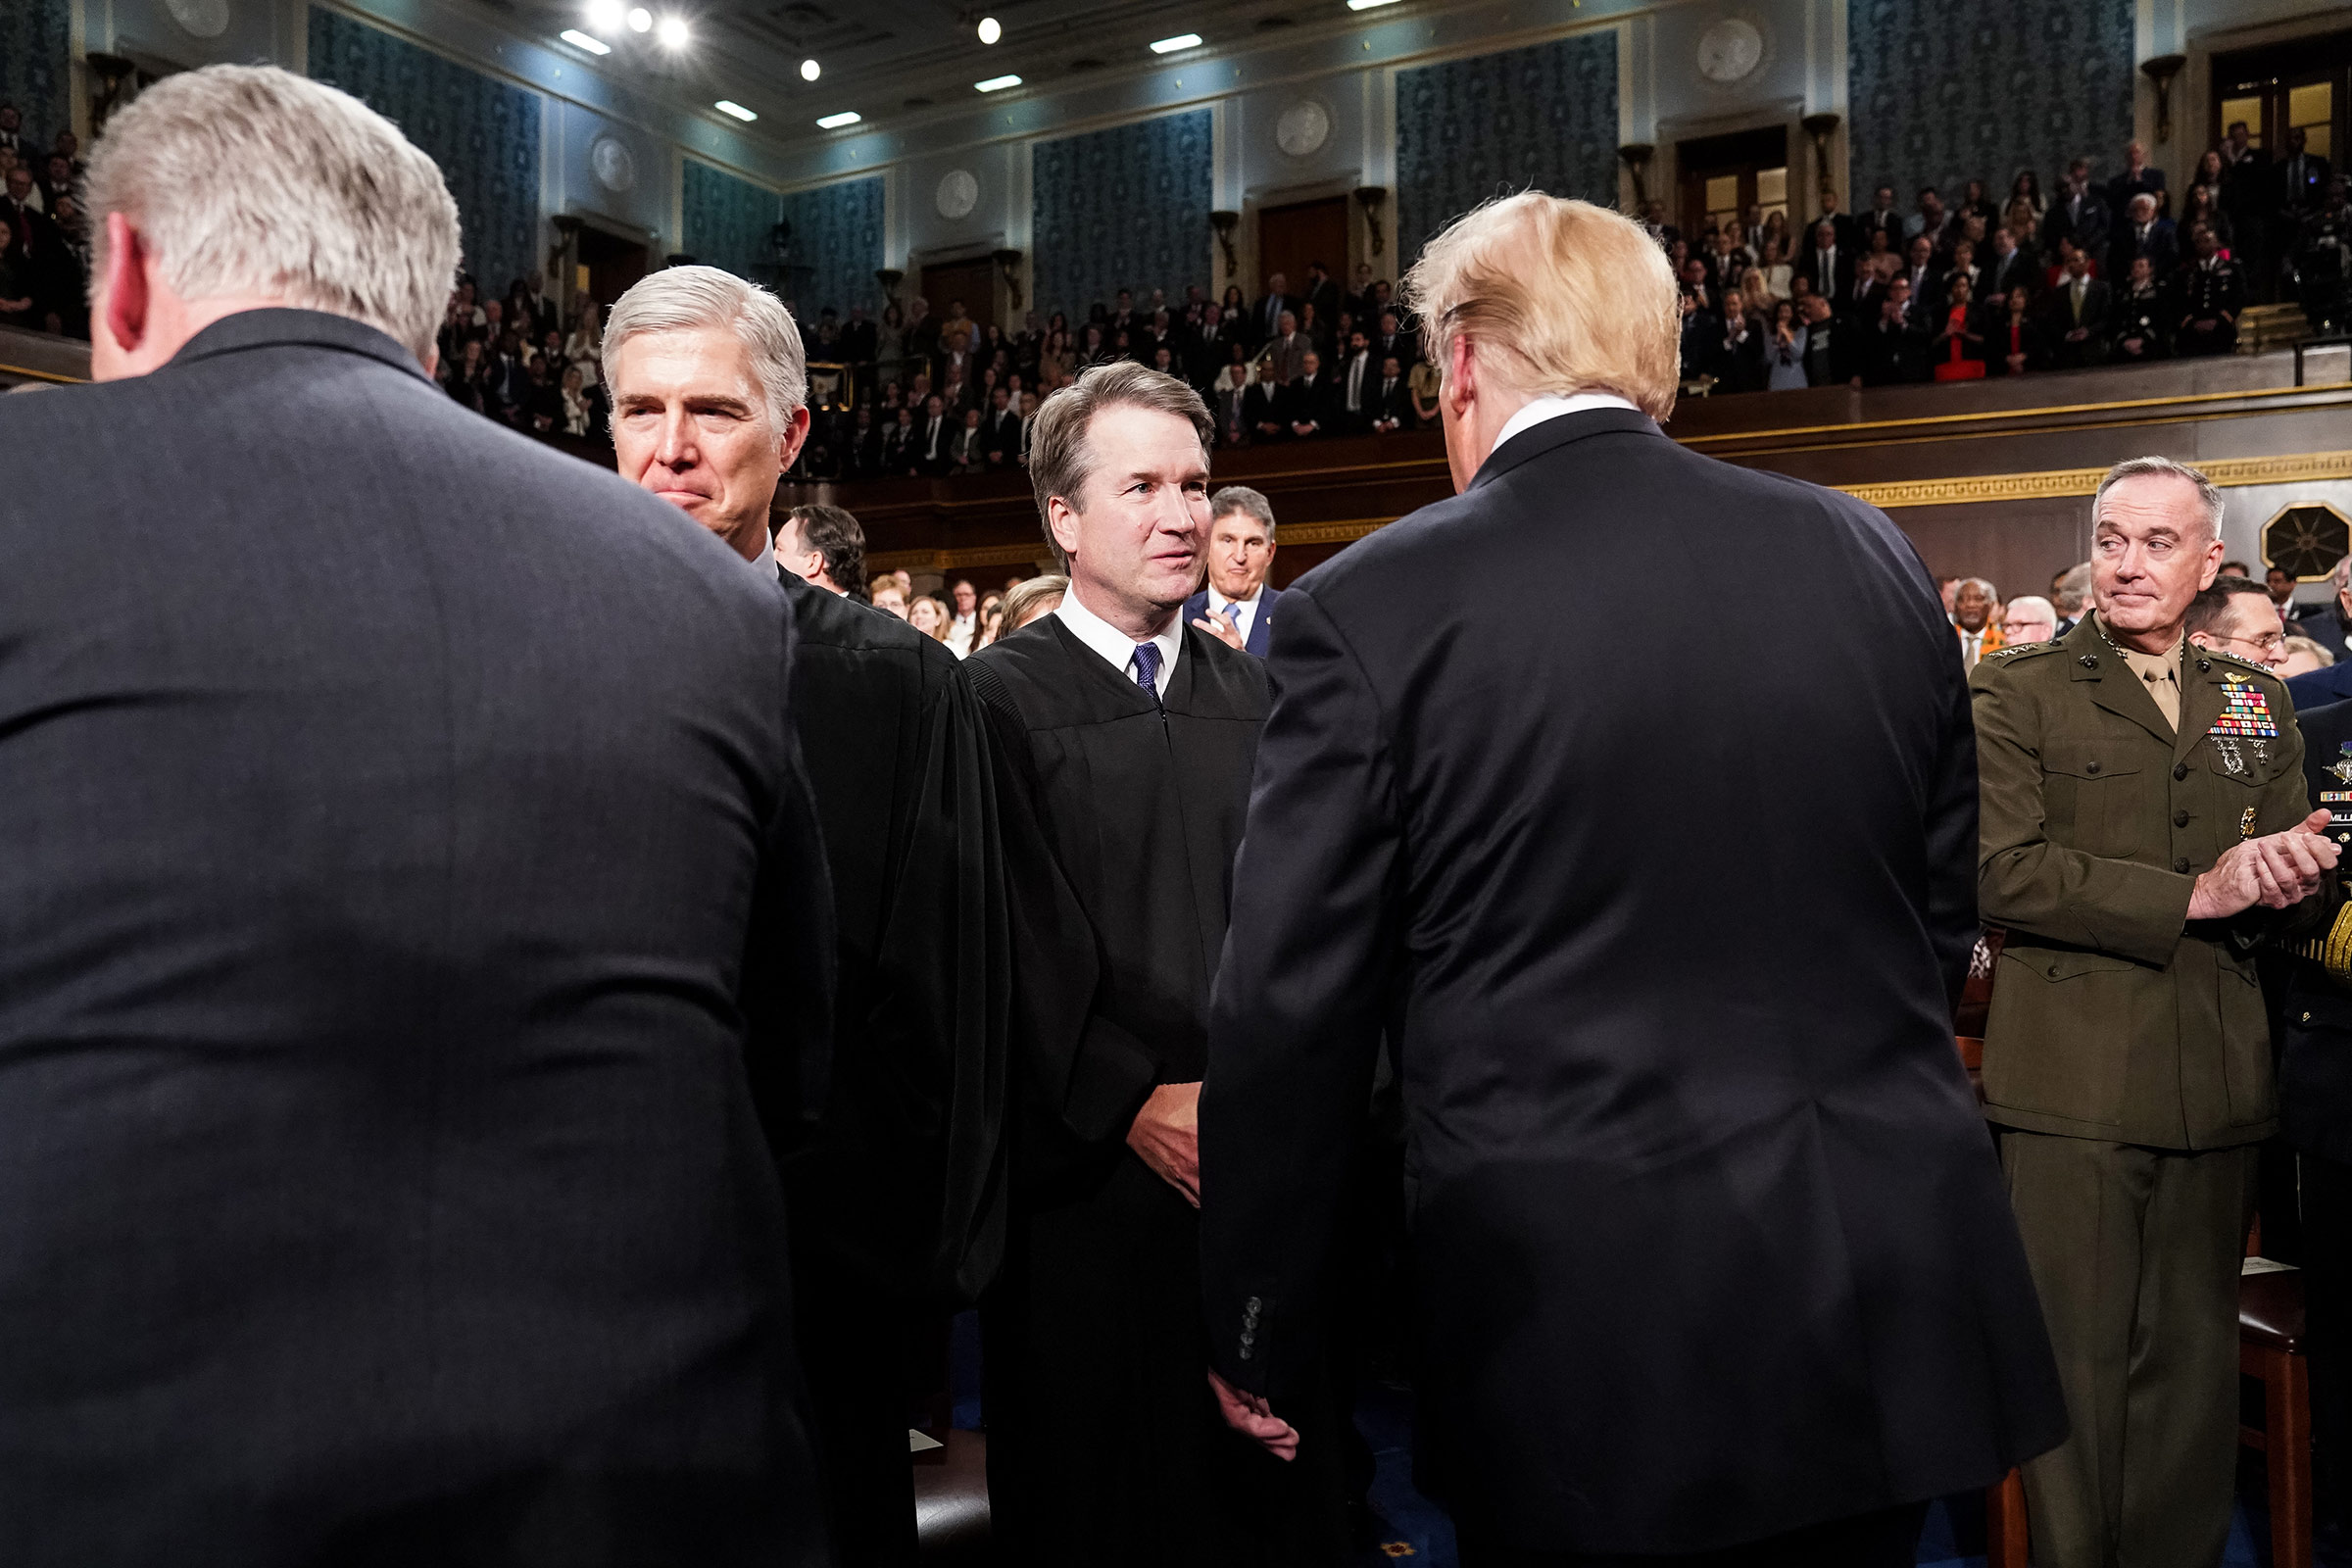 Supreme Court Justice Brett Kavanaugh shook hands with President Donald Trump before the State of the Union address at the Capitol in Washington, DC on February 5, 2019.